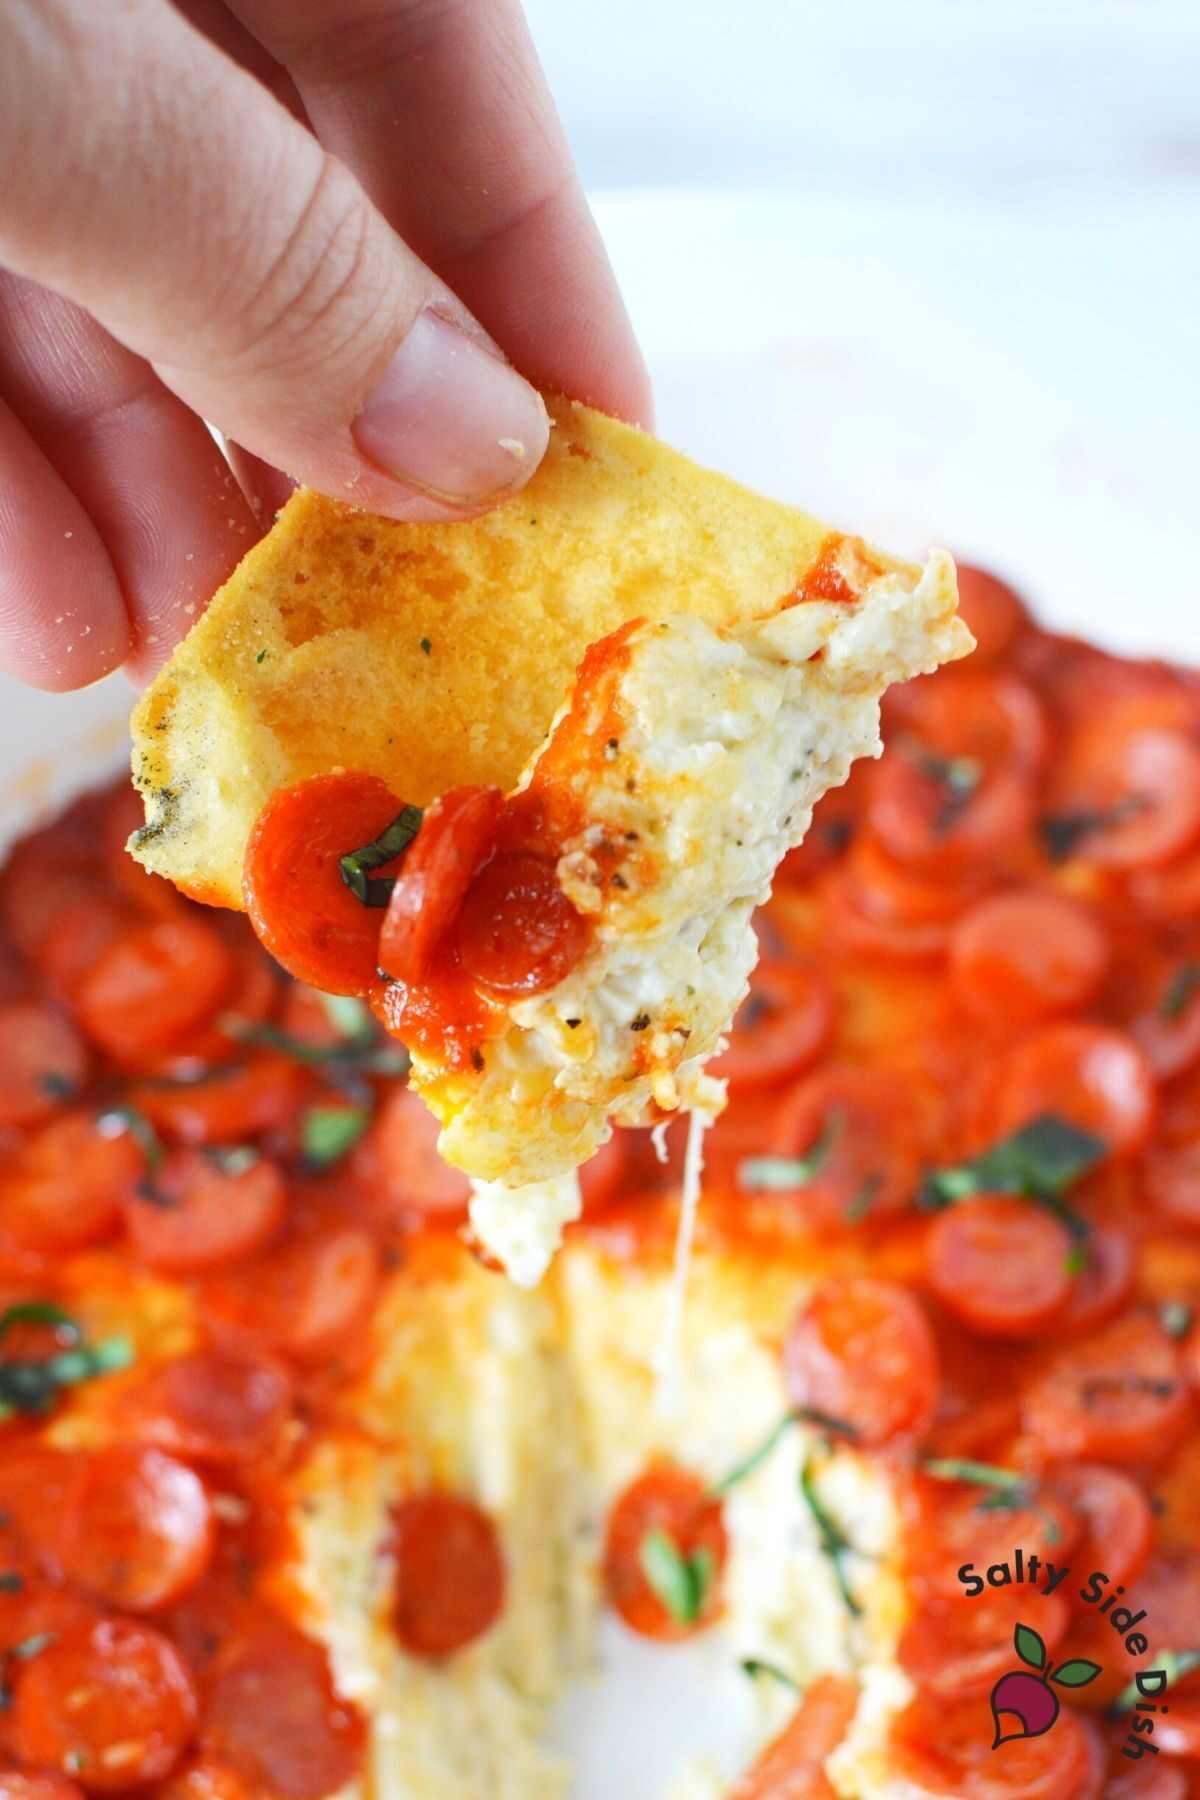 pita chip being dipped into and pulled out of pizza dip.